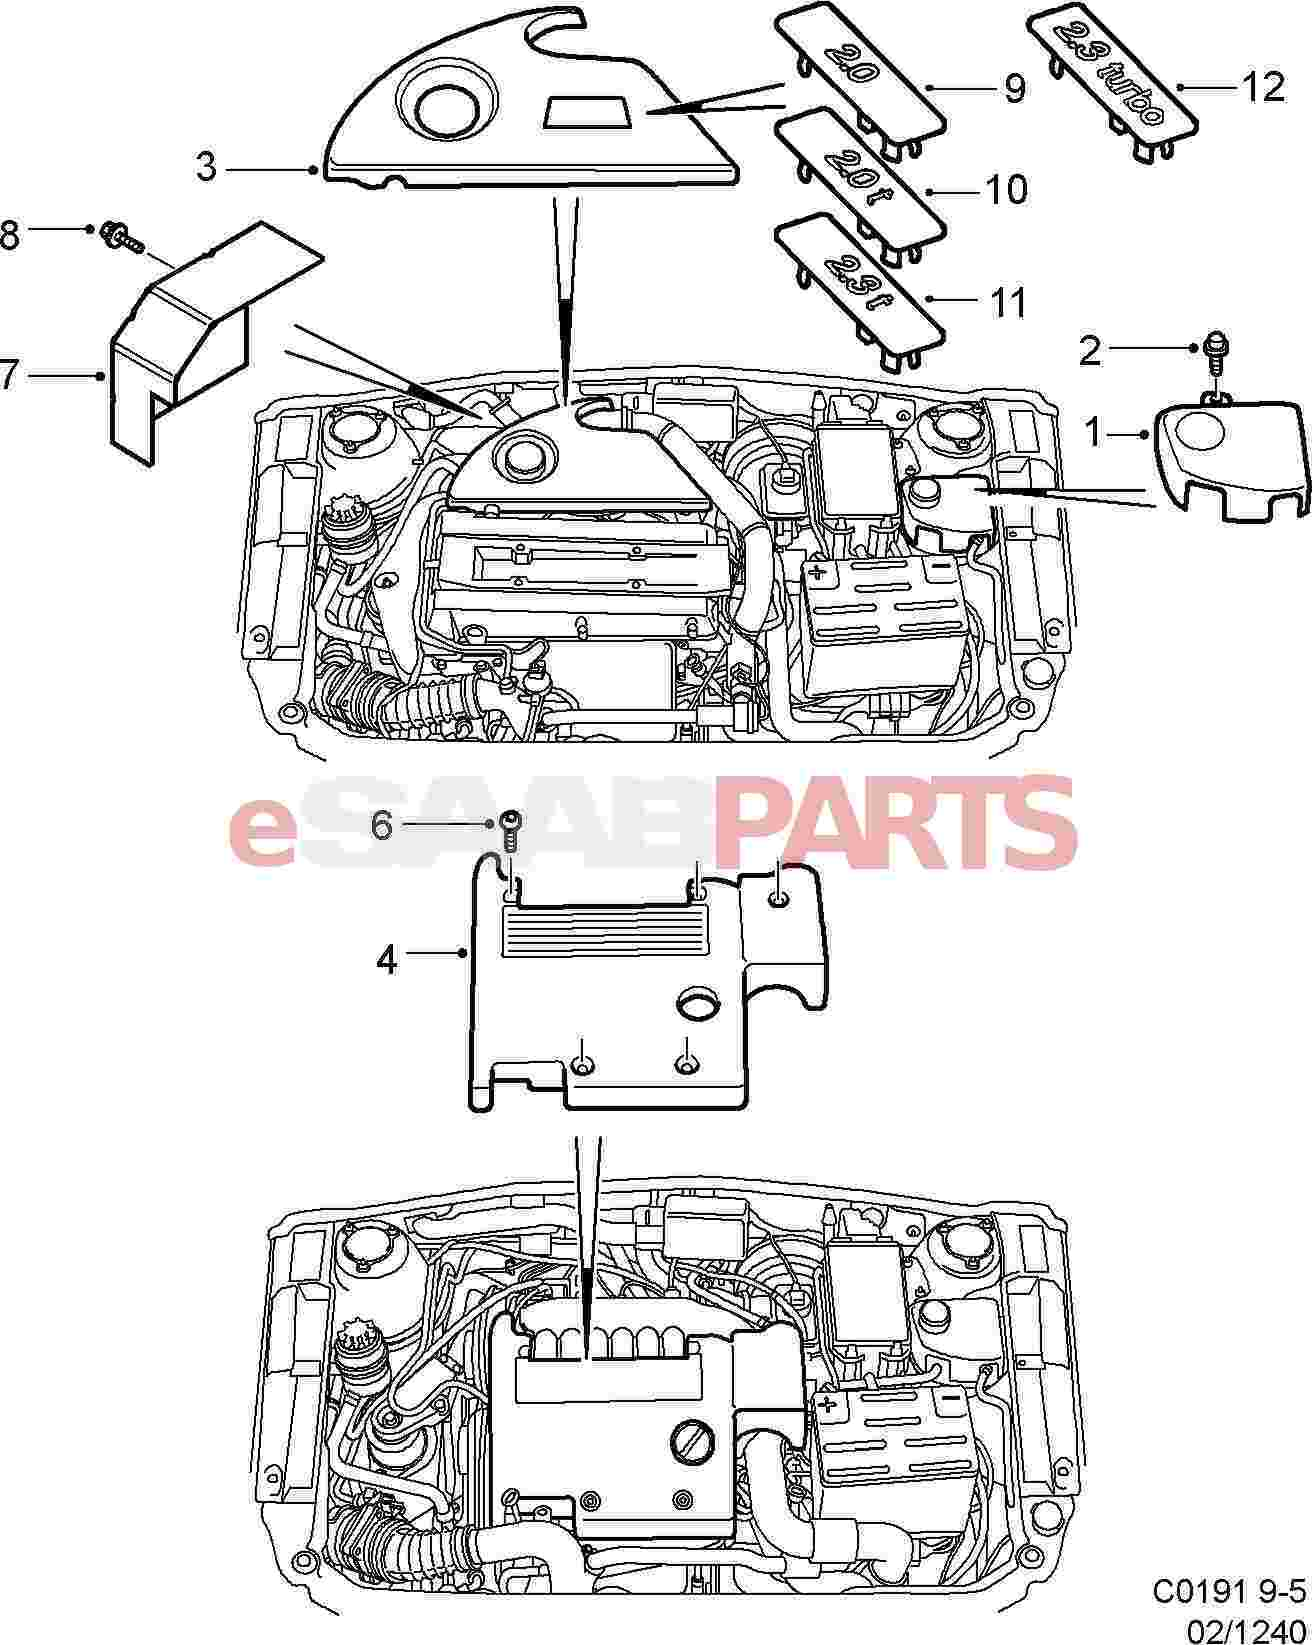 Saab 96 Wiring Diagram Great Design Of Accord Engine Mounts Honda 2003 9 3